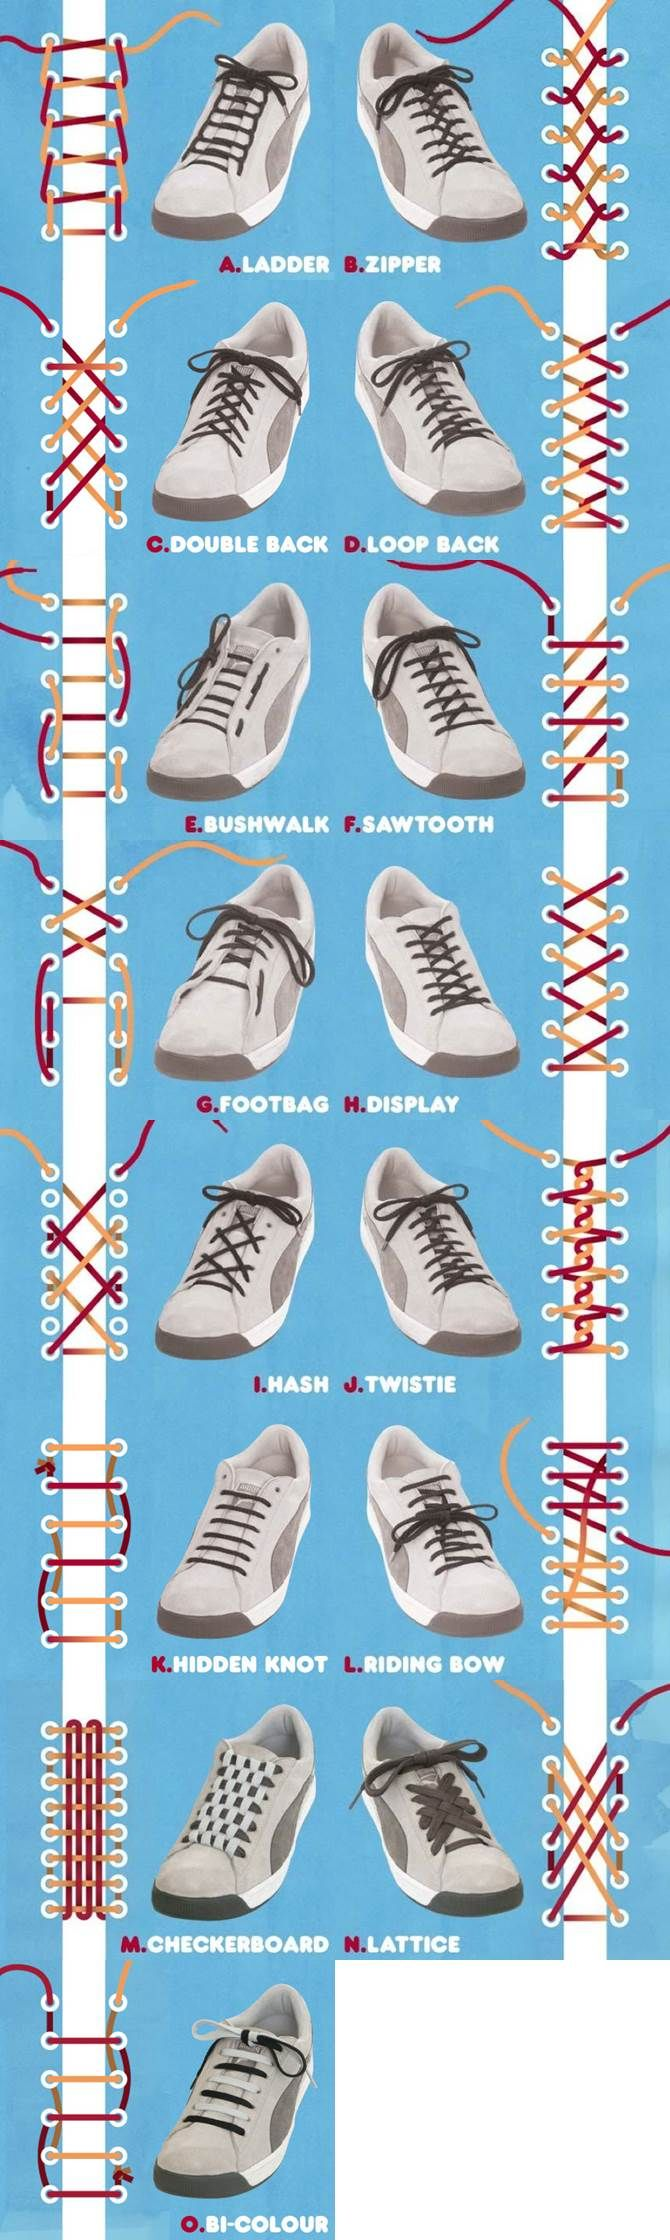 Cool Ways to Lace Your Converse Shoes | Famous